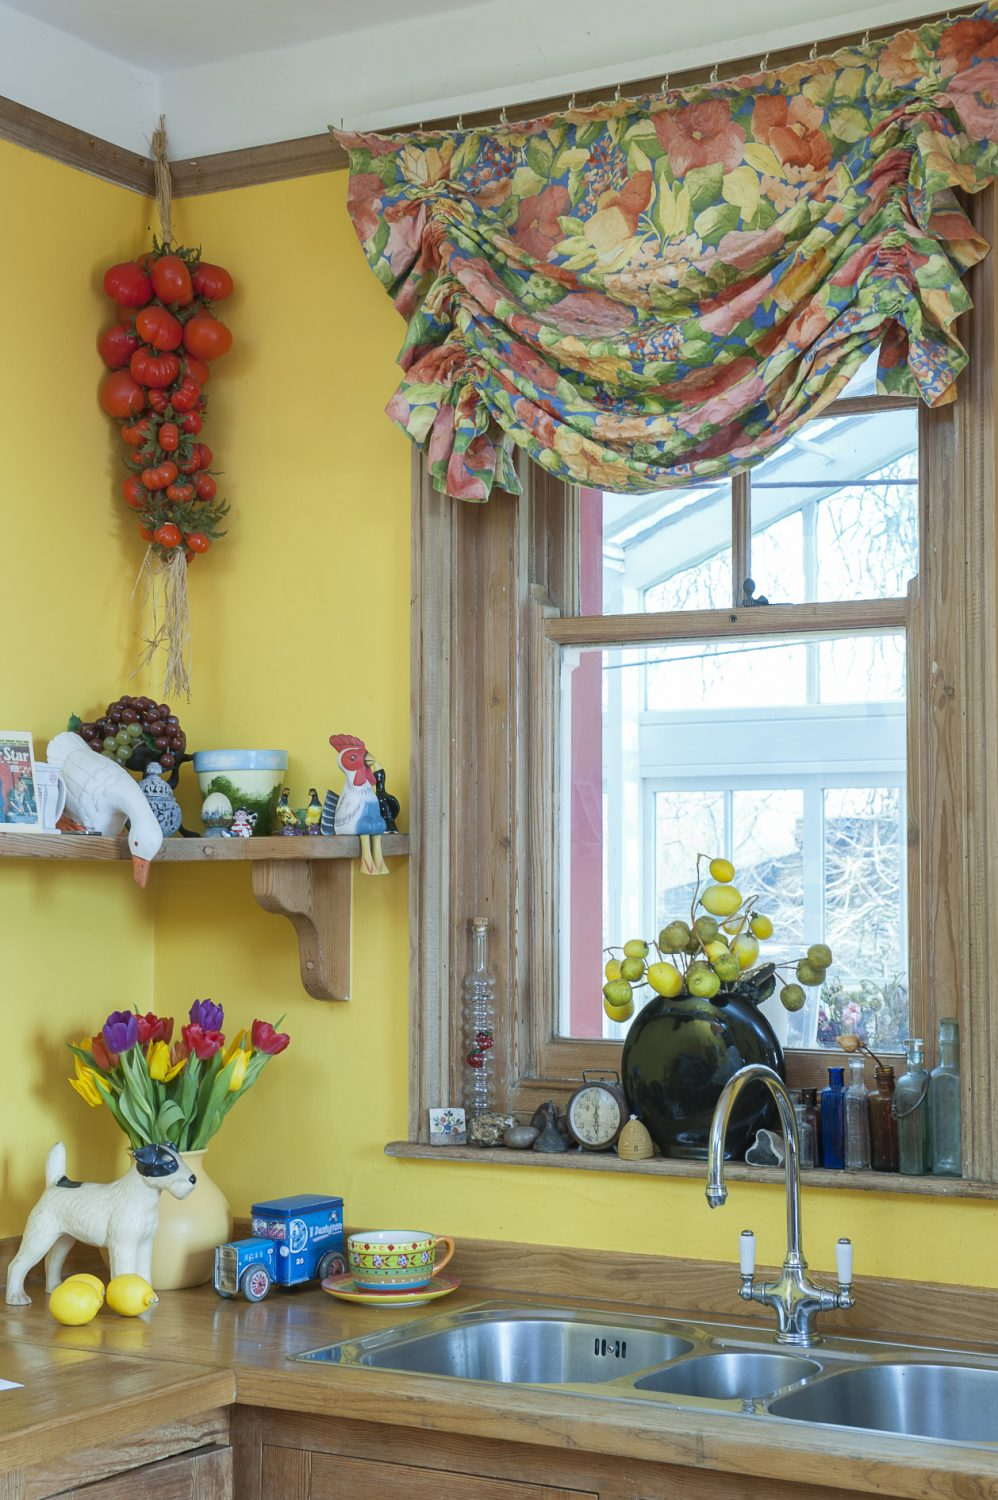 A kitchen window looks out into the bright conservatory